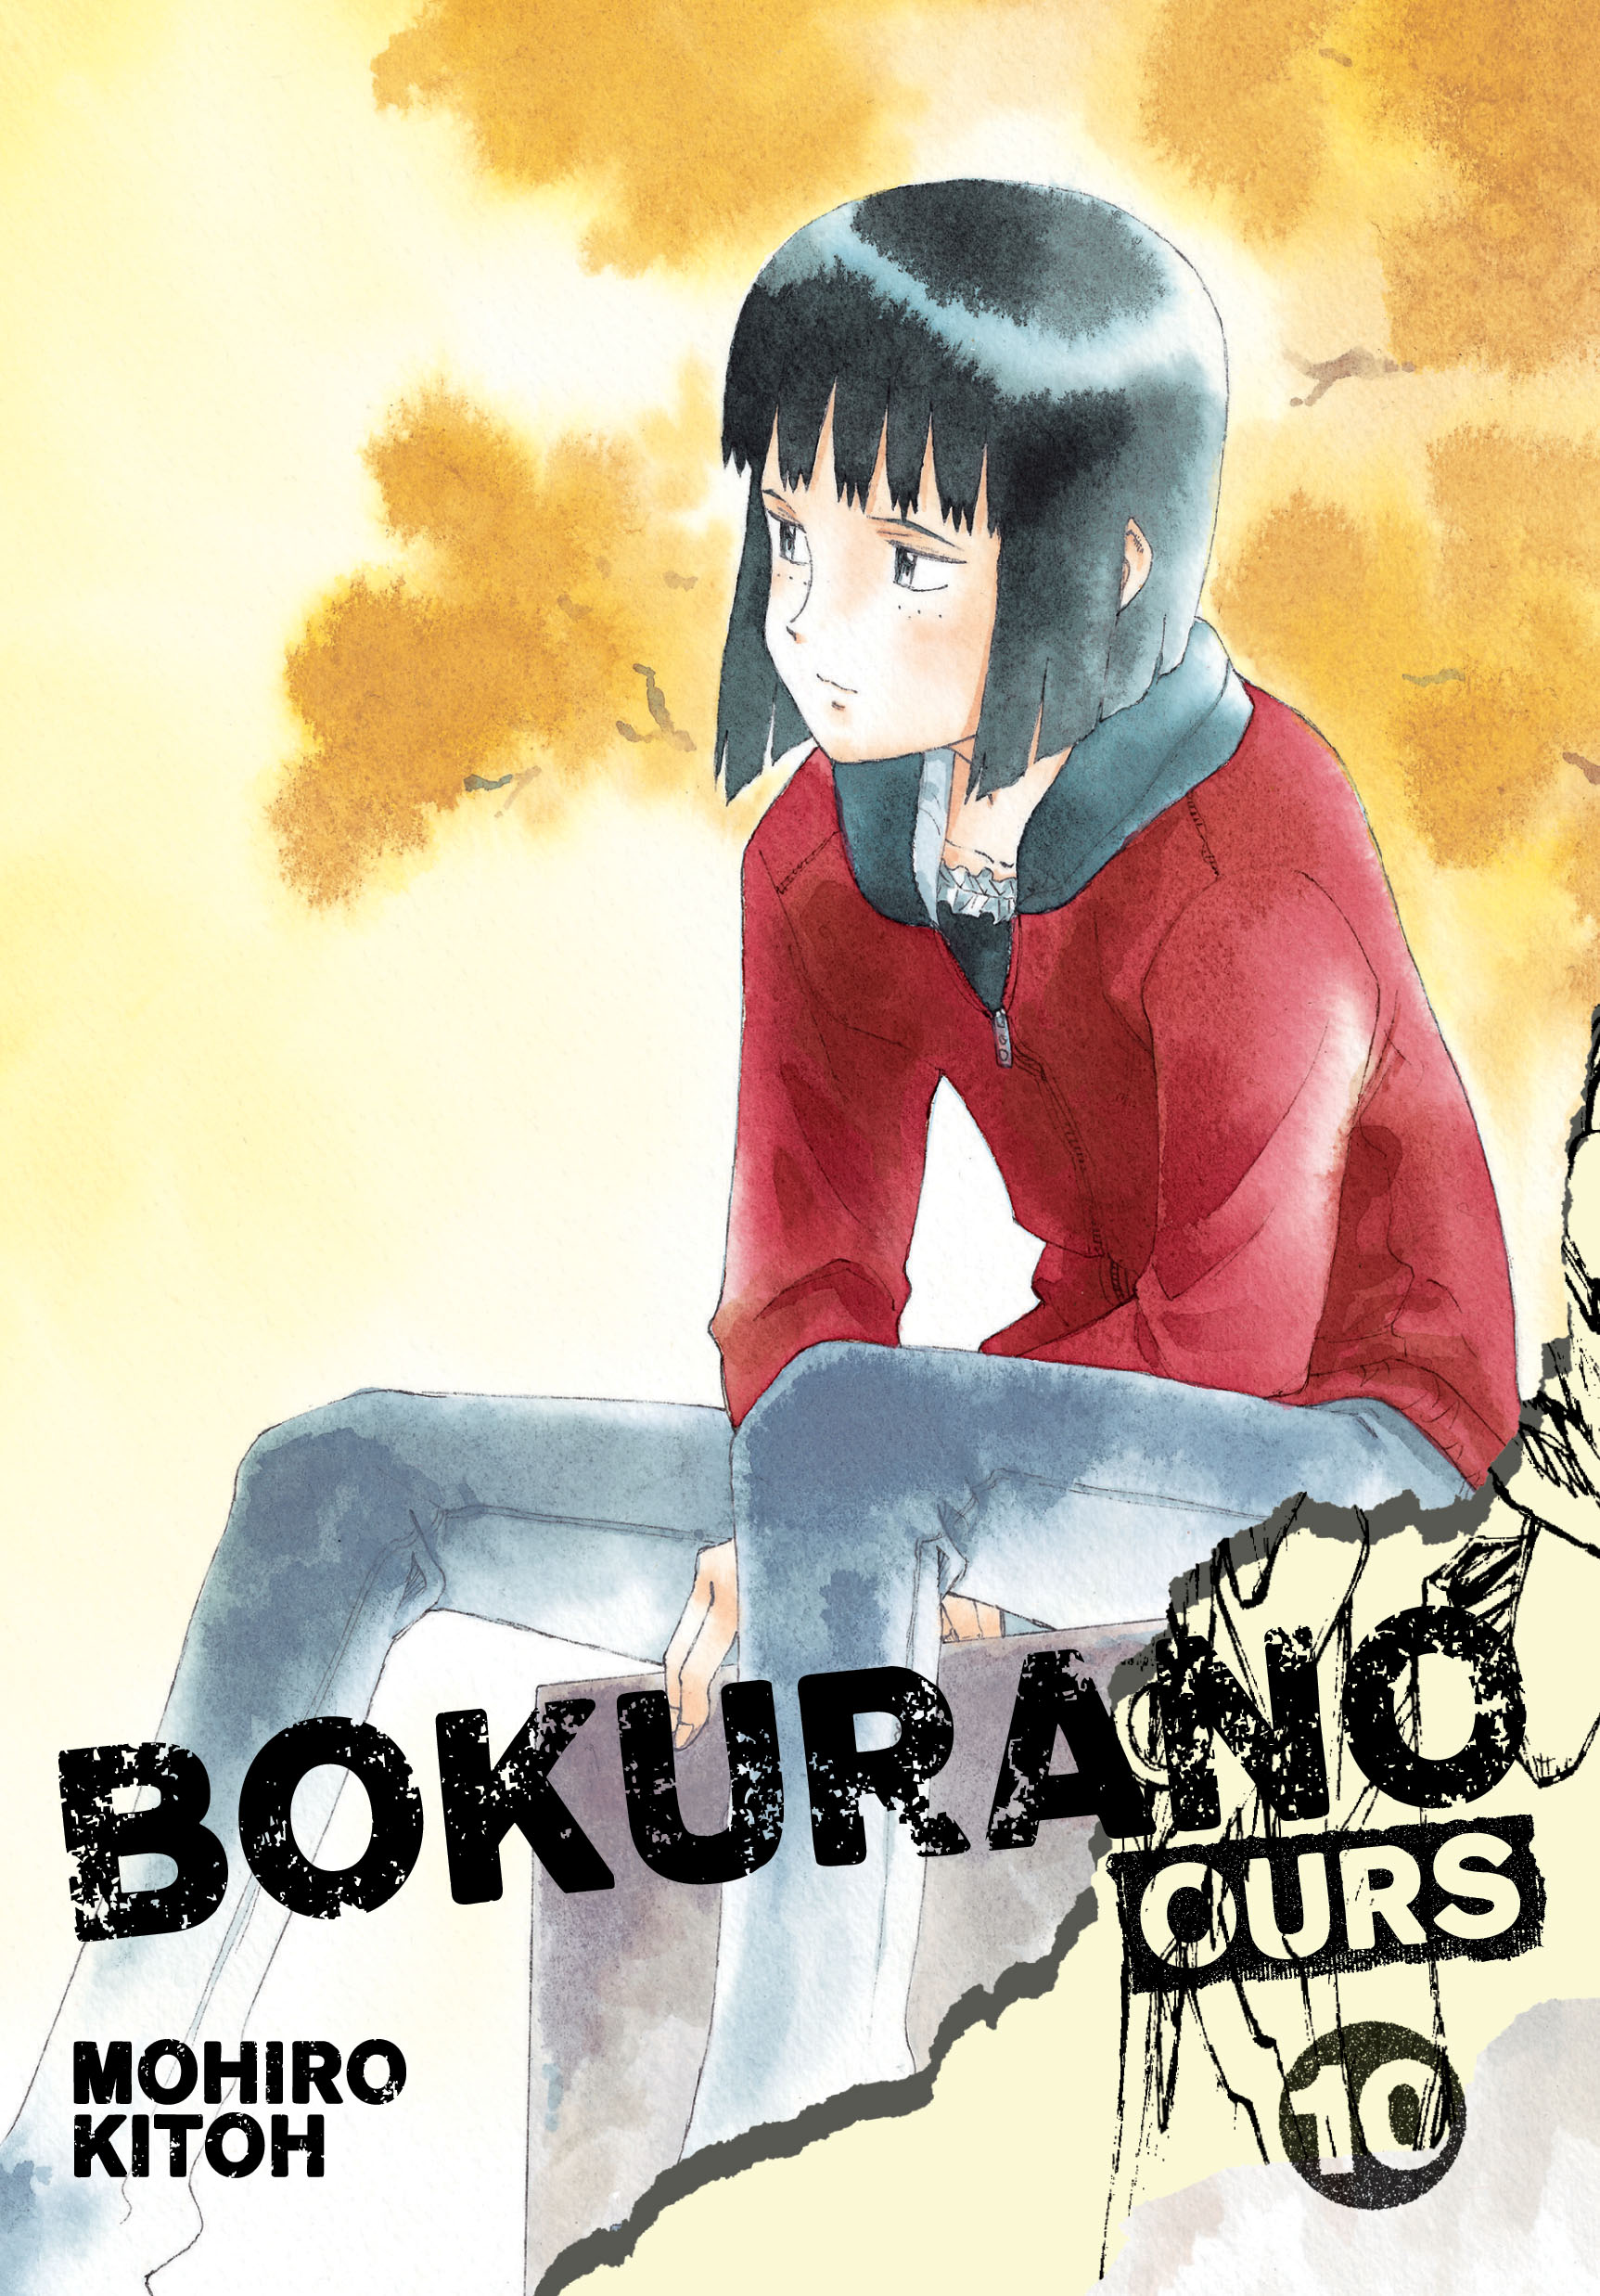 Bokurano-ours-vol-10-9781421535401_hr